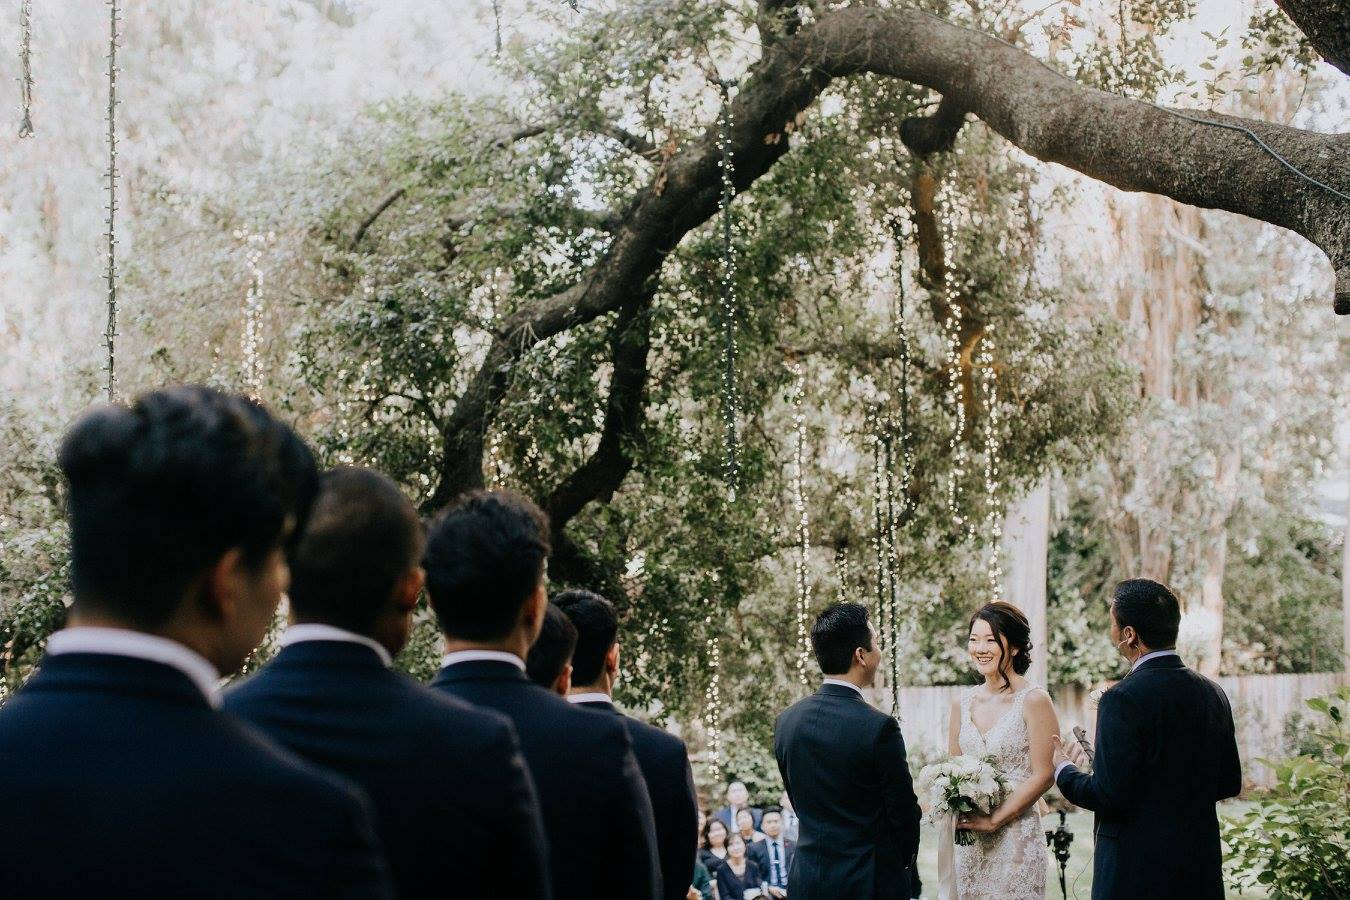 Soojin & Ray - Image by Michael RyuCoordination + Florals by Rekindle